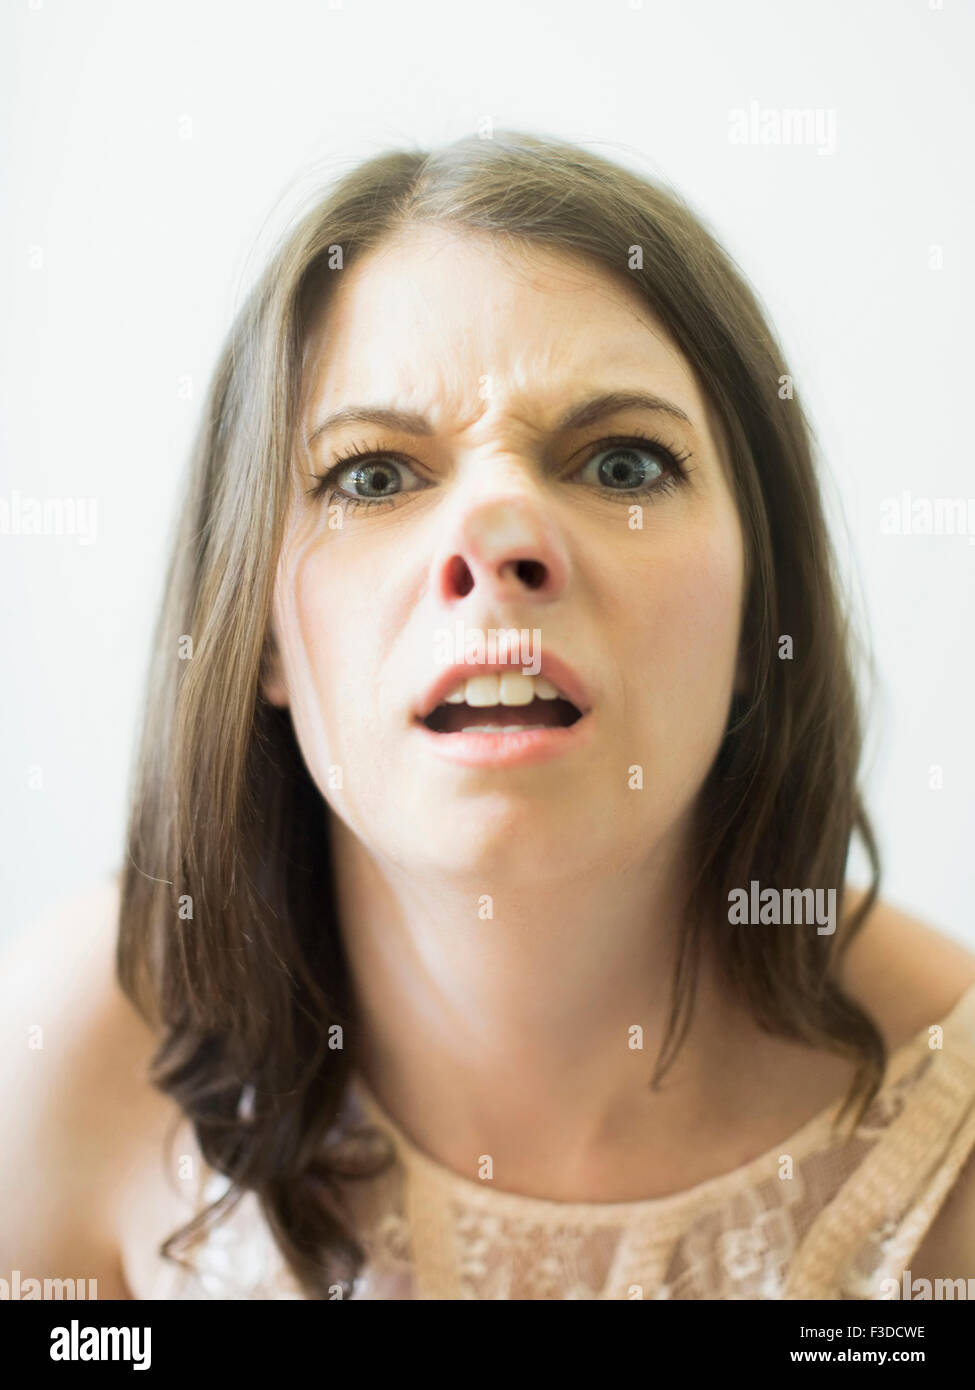 Woman making funny face on glass - Stock Image